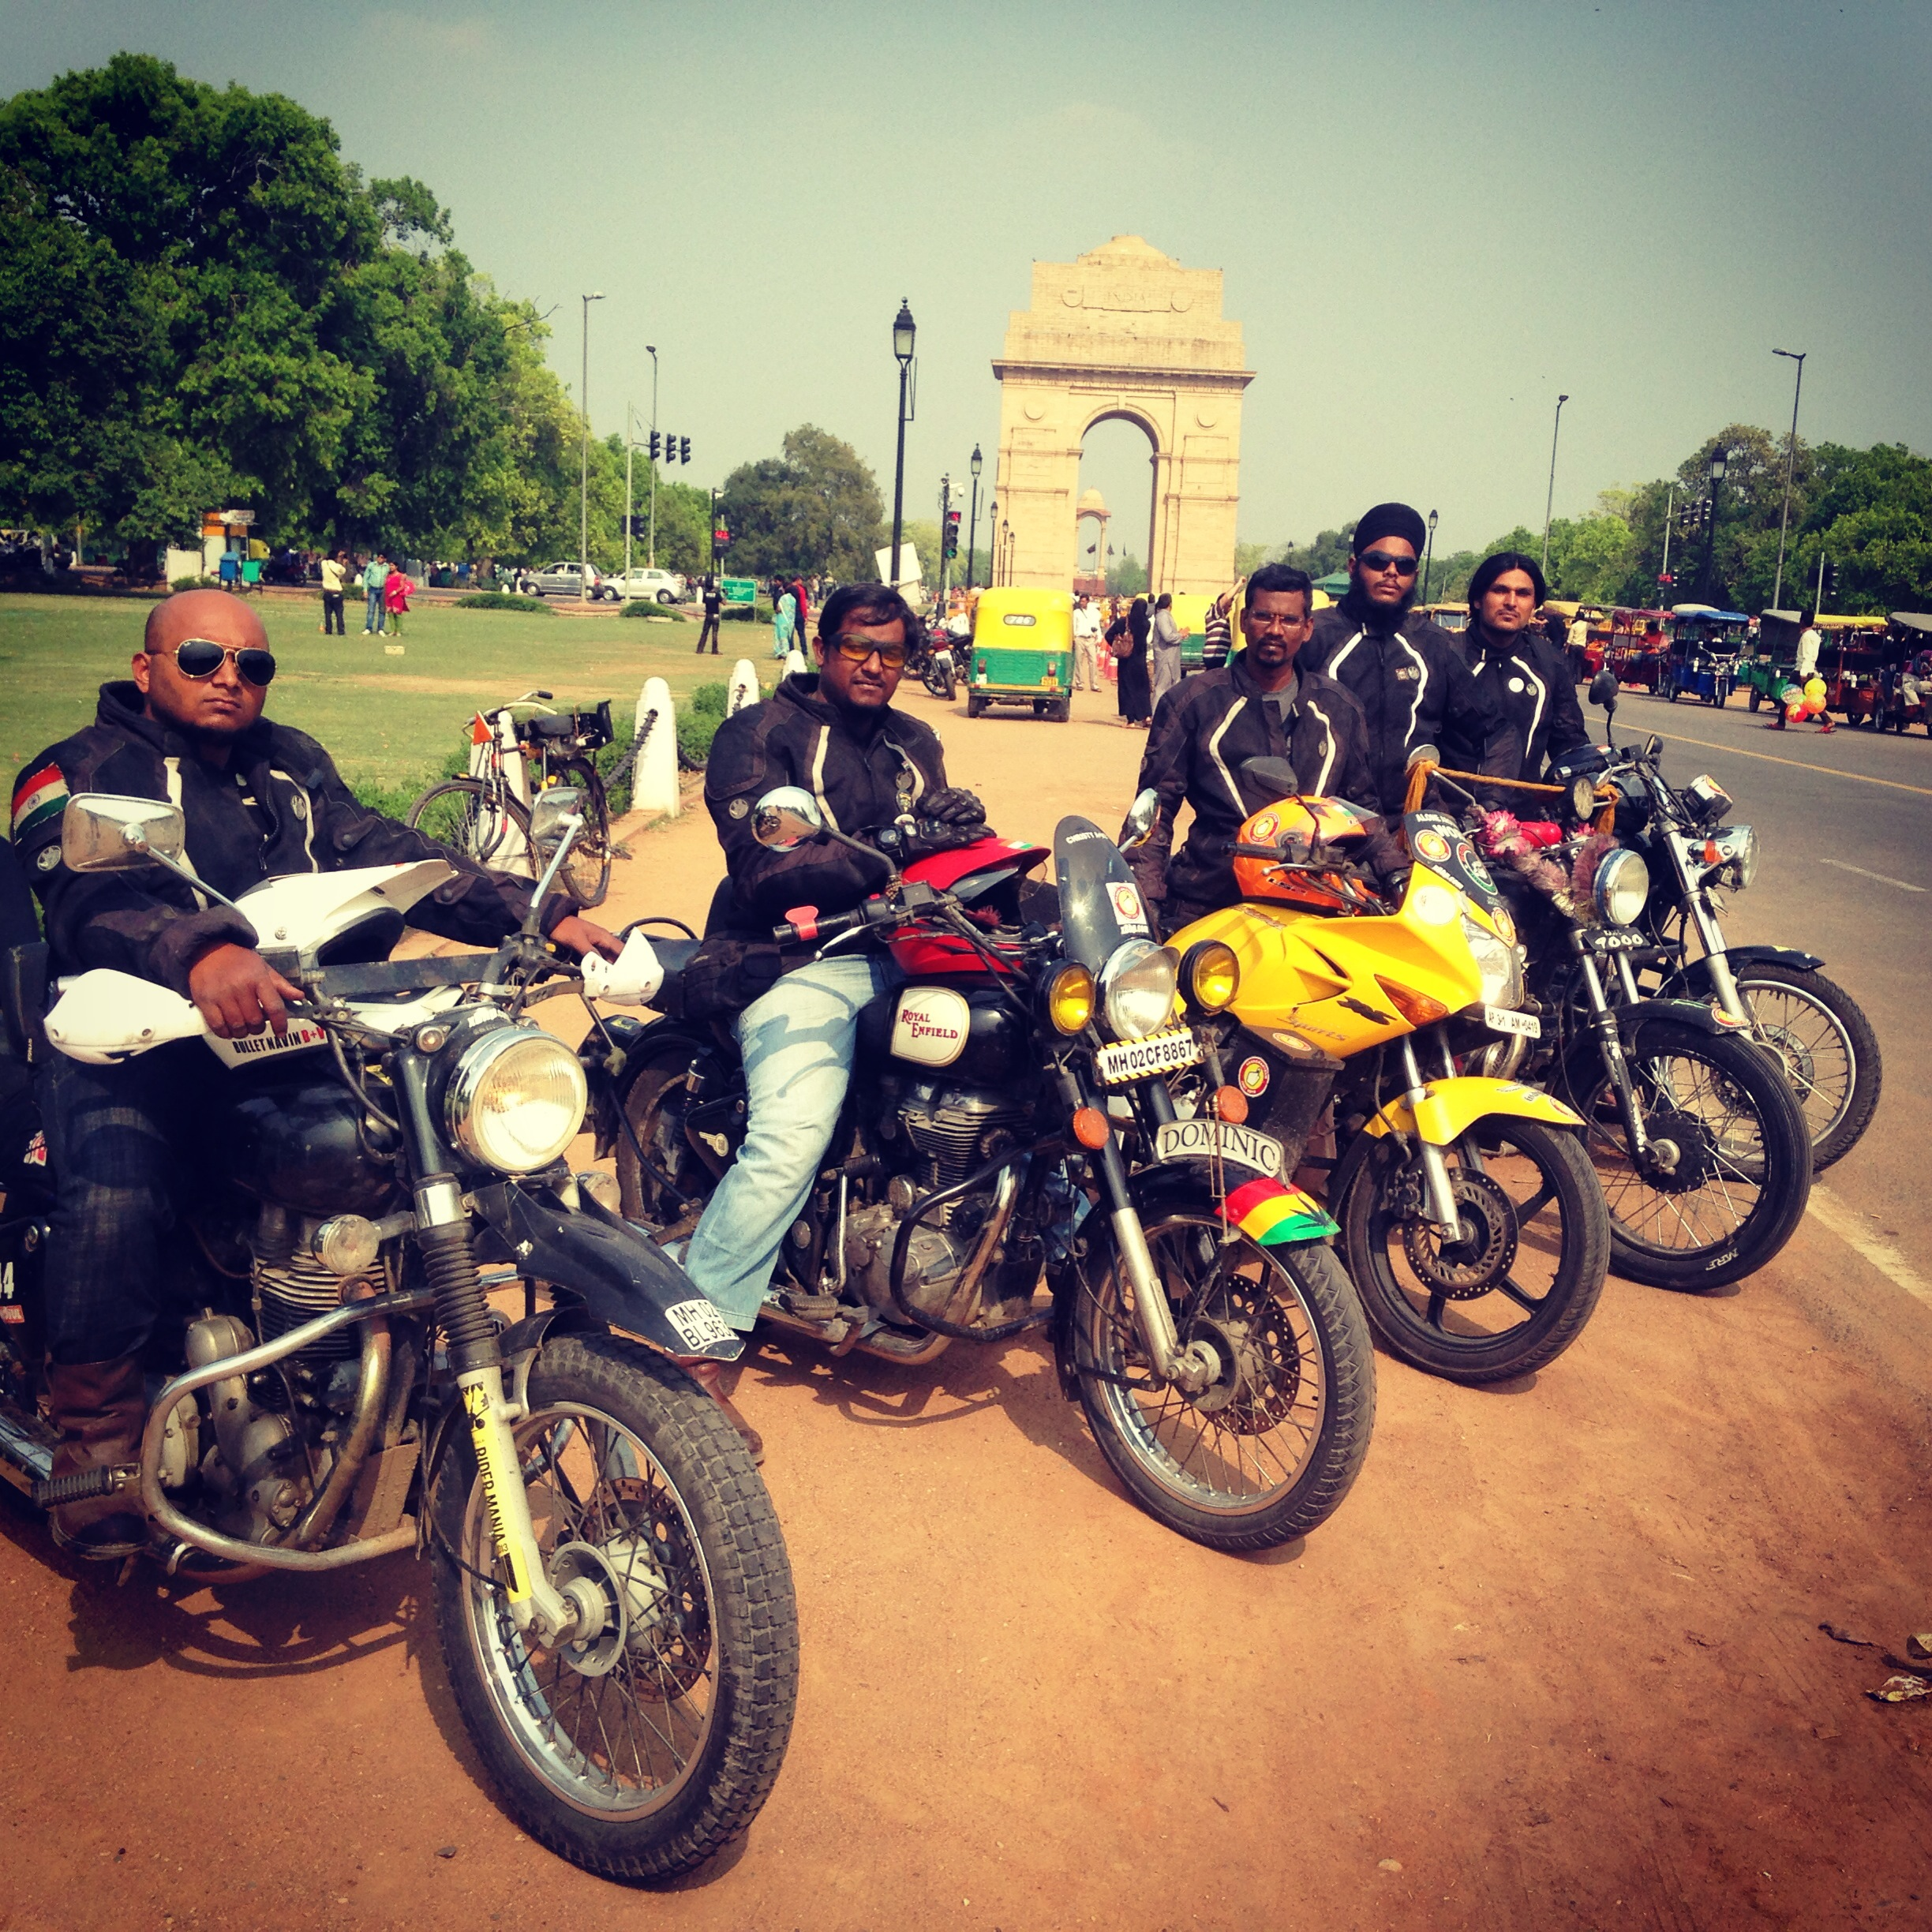 Getting People To Vote Mattered To These Bikers So Much That They Rode 15,000 Kms For It!